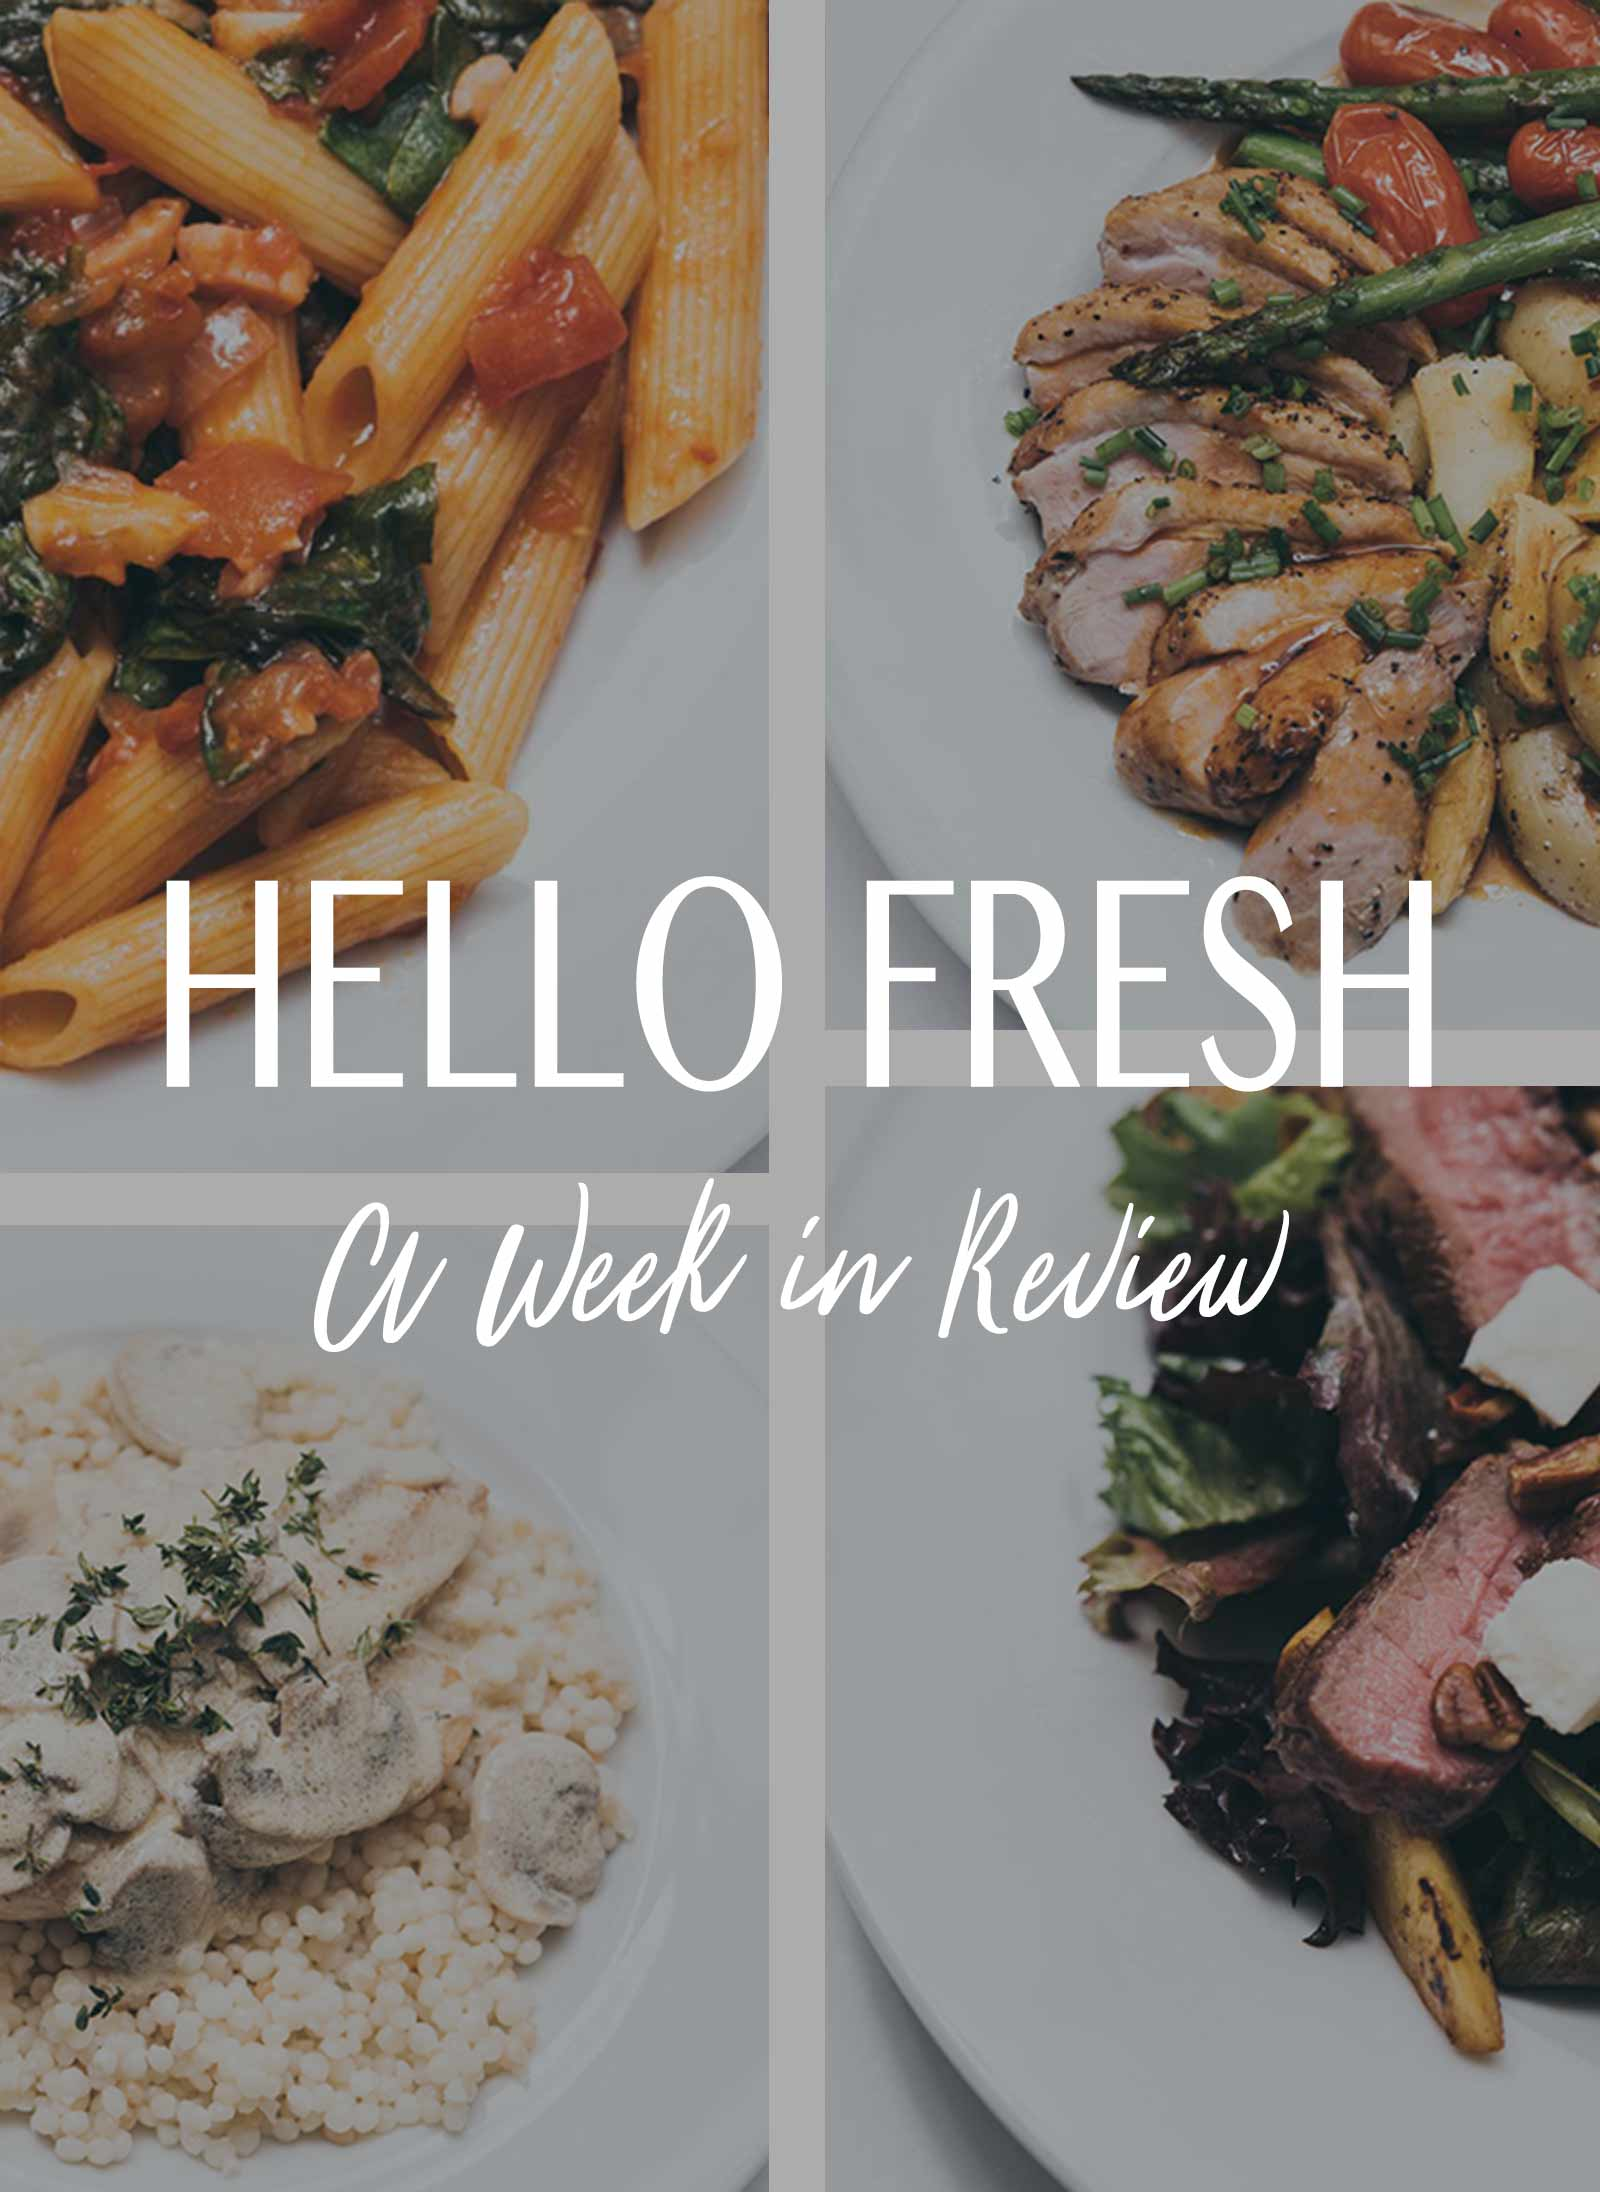 Hellofresh Meal Kit Delivery Service Specs